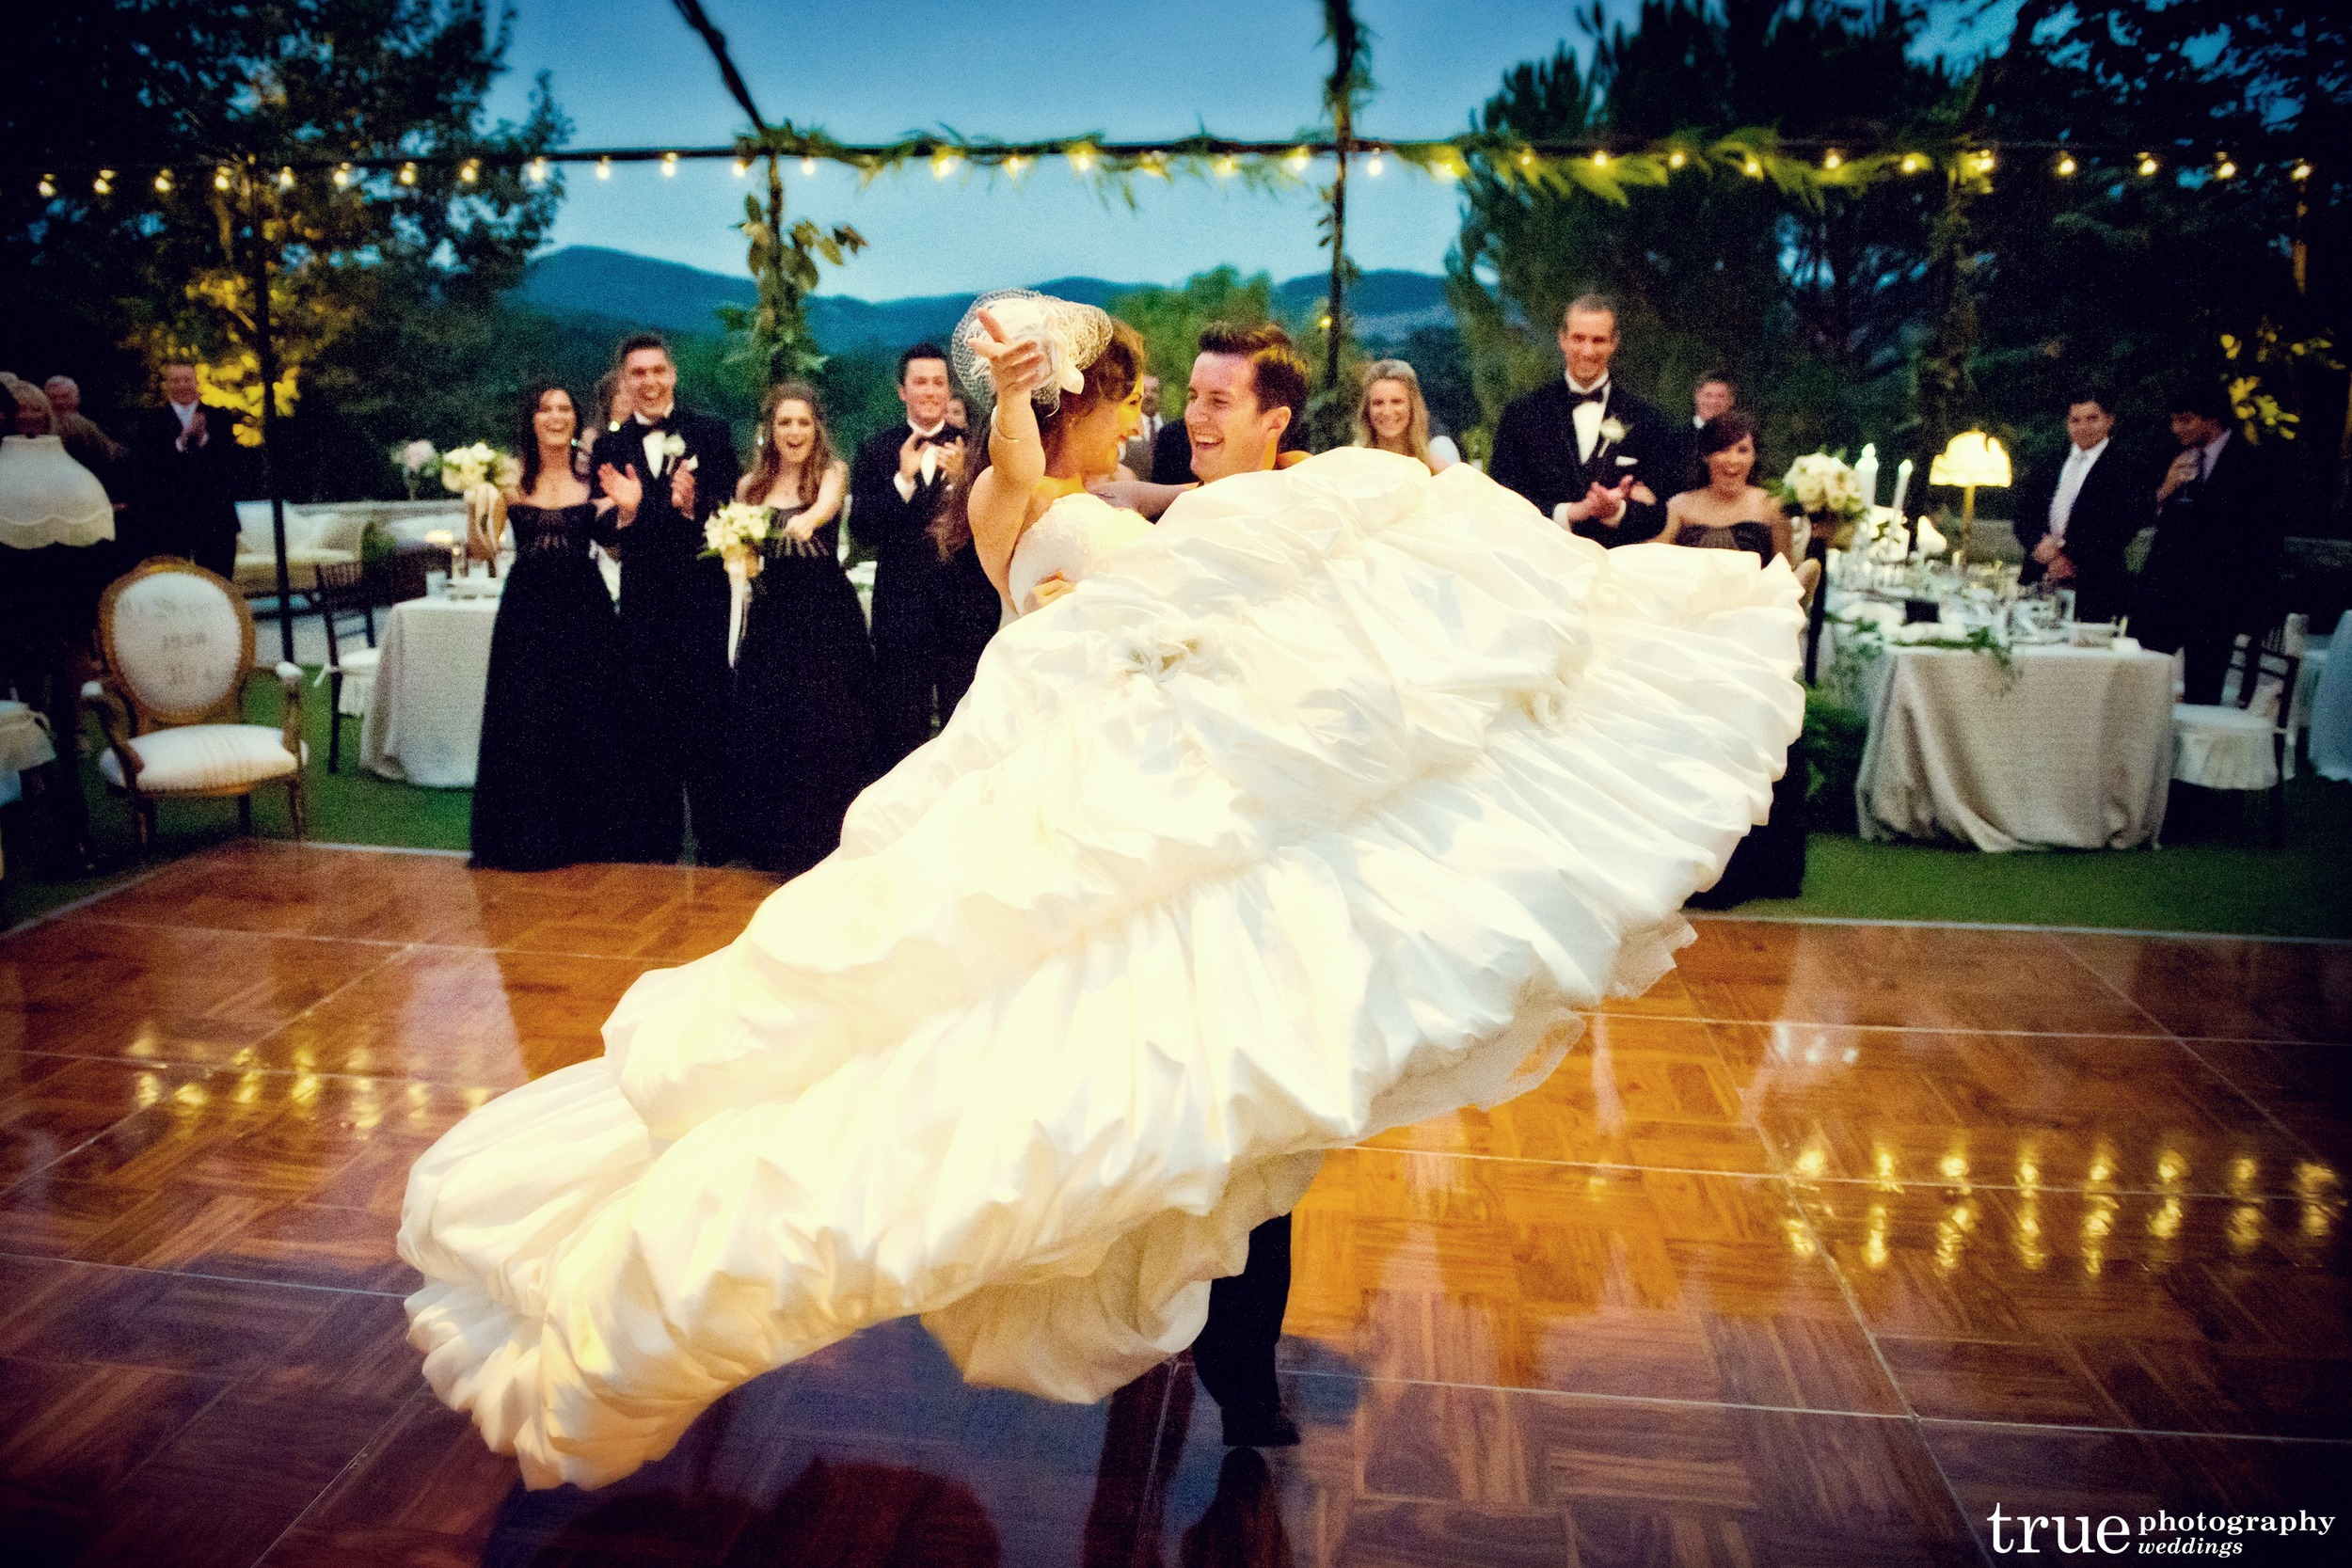 Trevor and Amanda's first dance. We had the bridal party lined up on the dance floor so they could be in the pictures too.